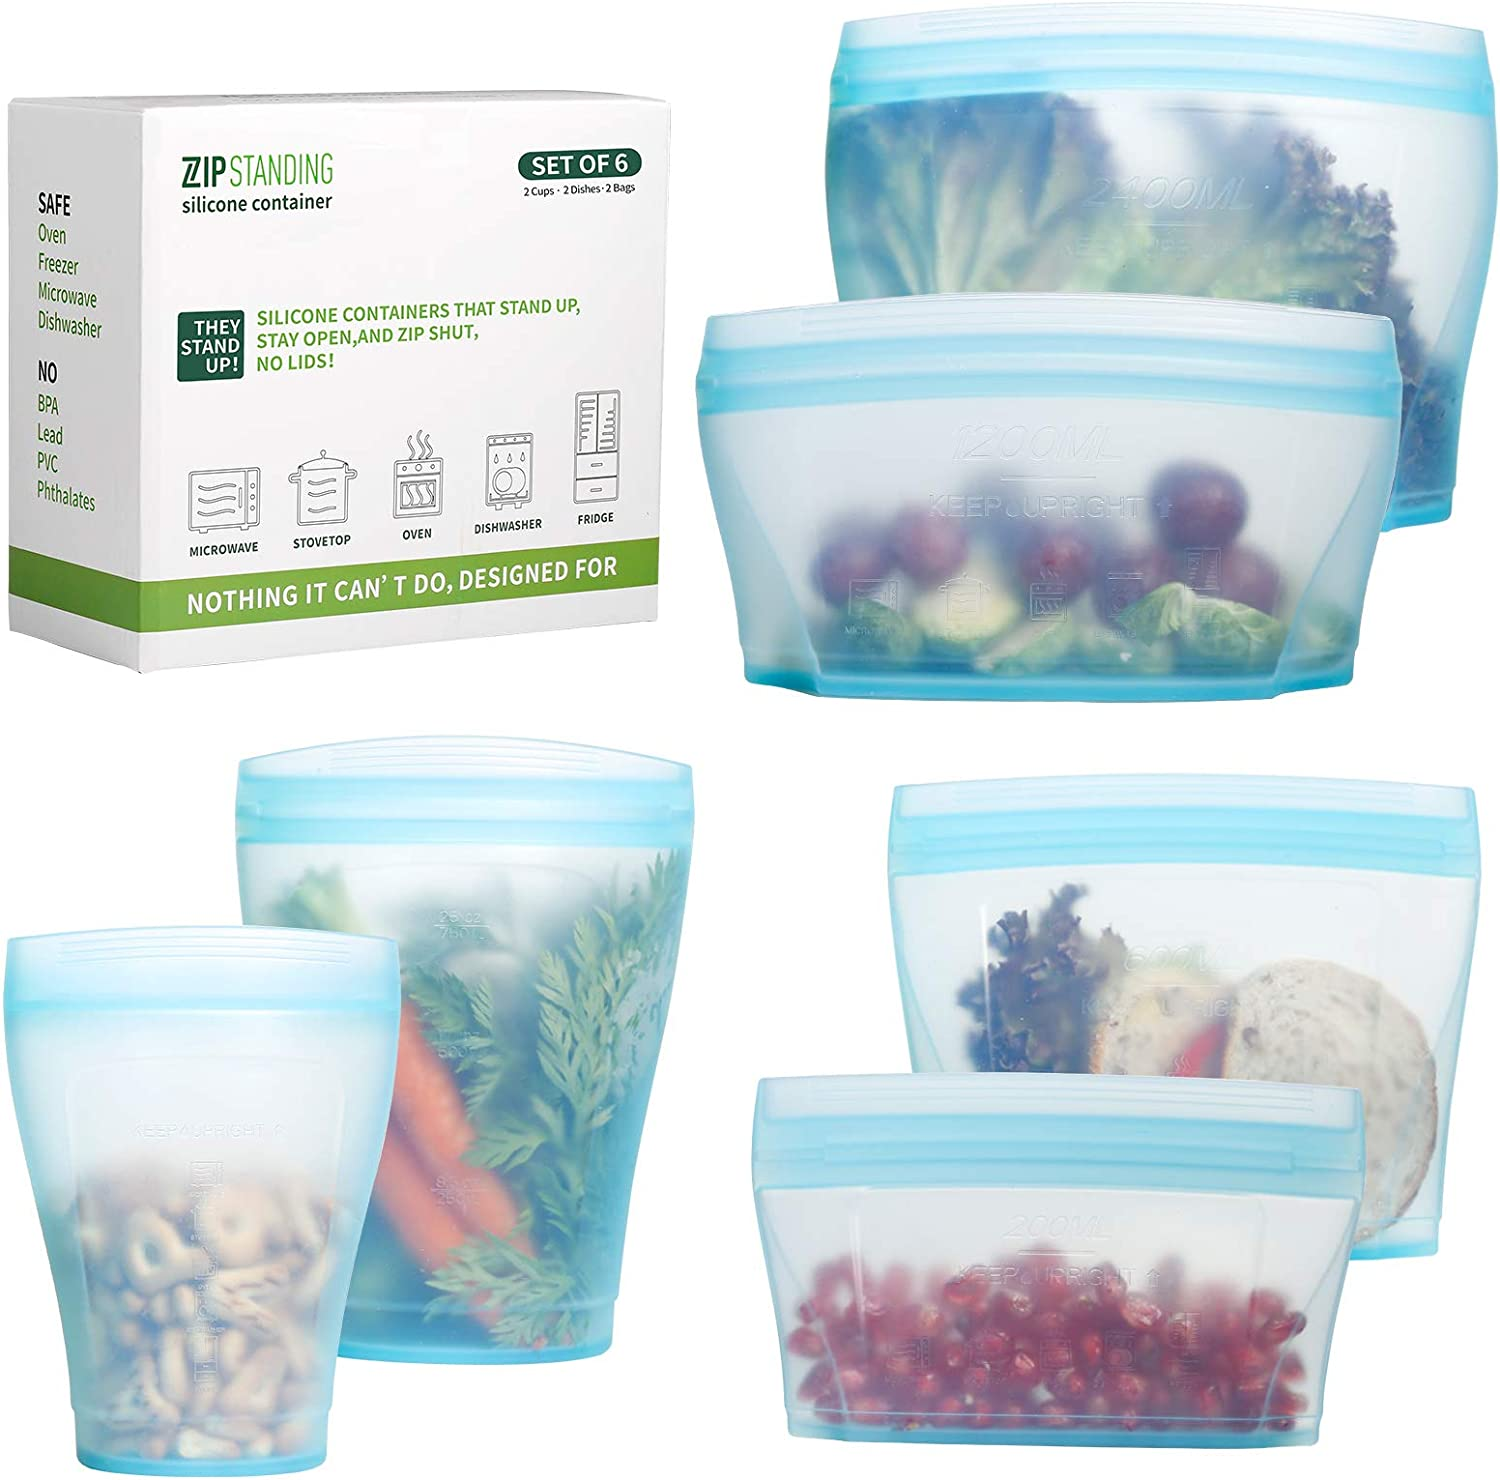 Zip Standing Reusable food Silicone Containers - Complete SET with 2 Cups, 2 Dishes, 2 Storage Bags. Larger Capacity, Dishwasher, Microwave, Freezer Safe. Healthy Food Grade.